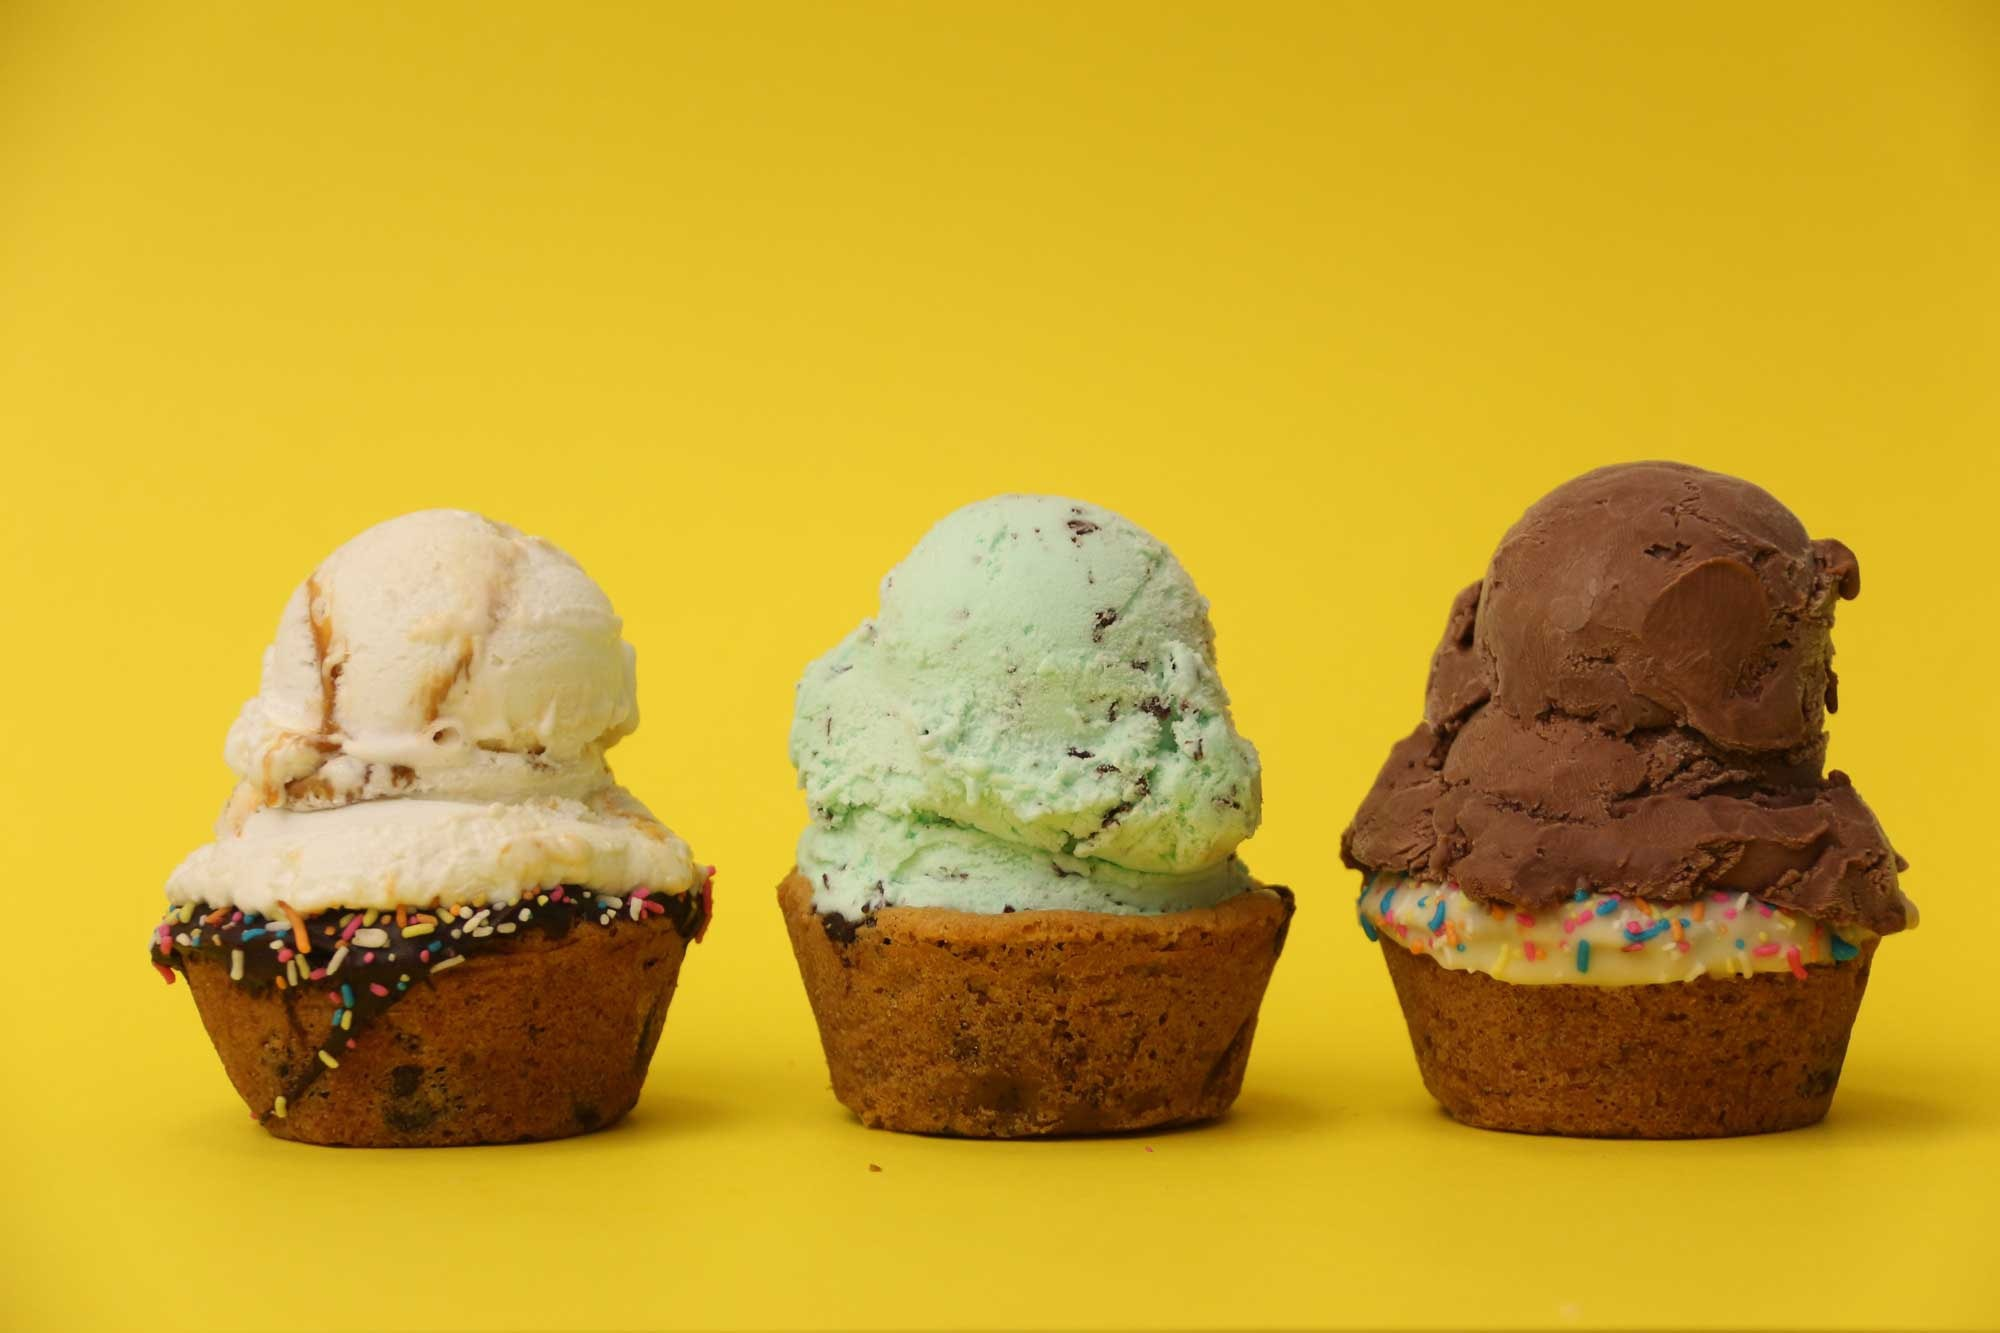 Indulge in ice-cream sandwiches and more at Crumbs and Cream   Courtesy of Crumbs and Cream